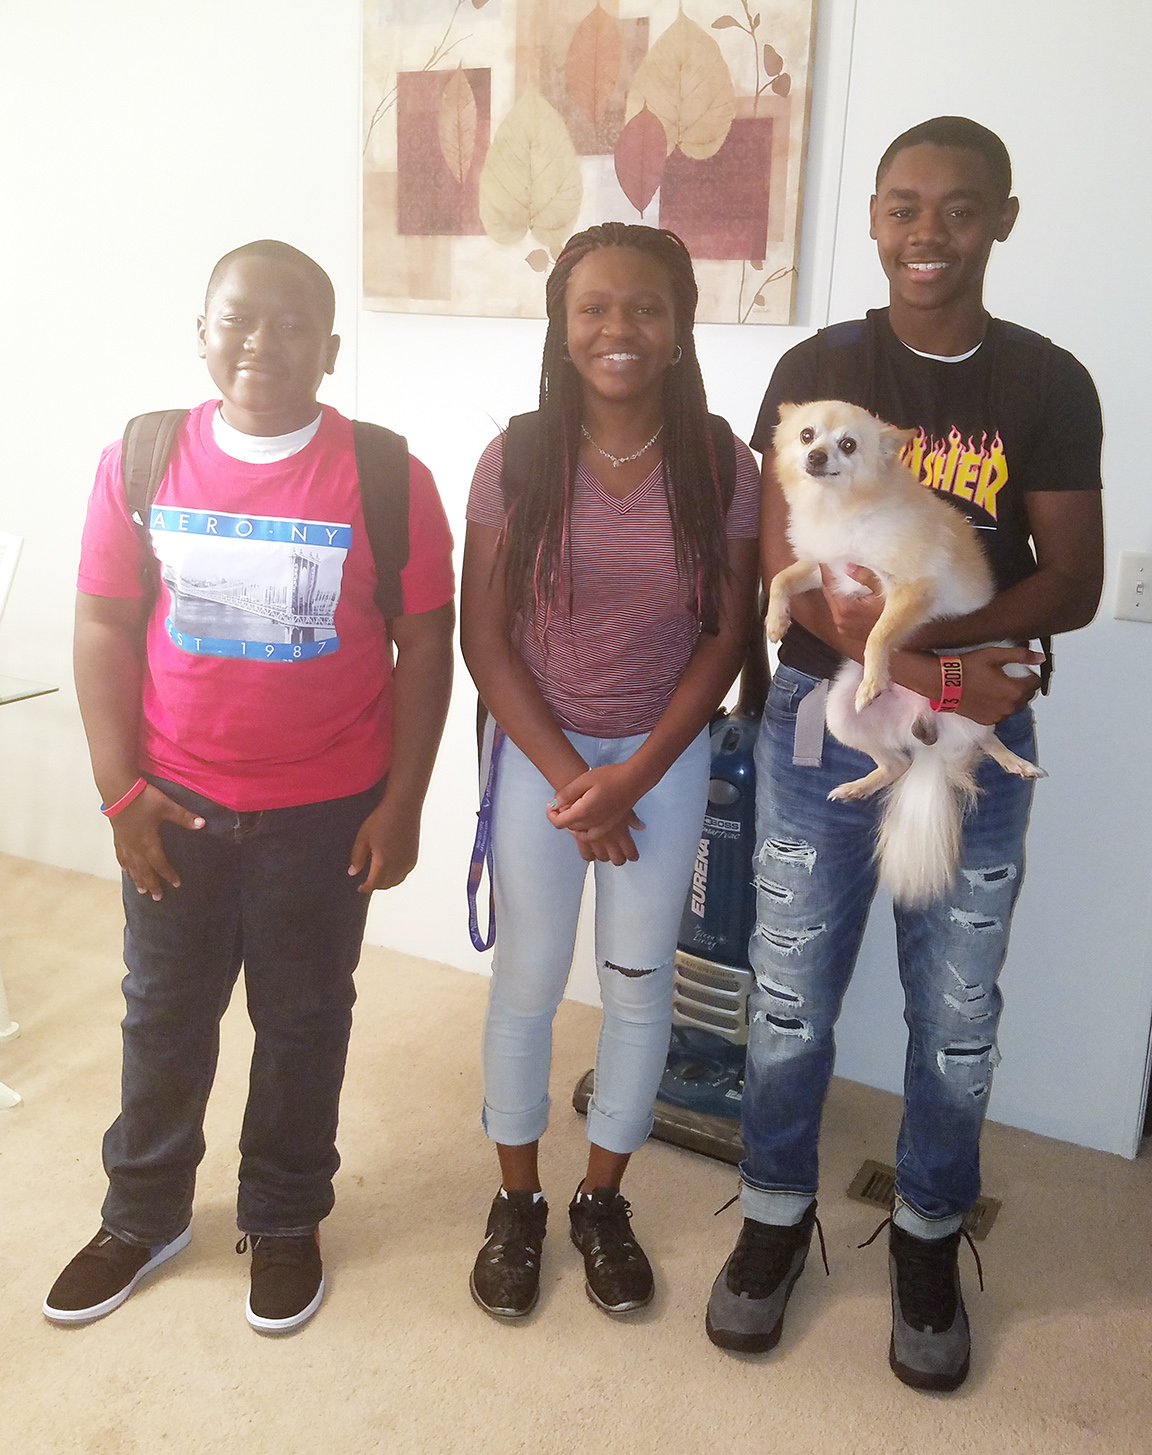 From left, Izayah Williams, freshman, South Lenoir High School; Clarissa Hardy, freshman, South Lenoir; Ty'Ron Williams, junior, South Lenoir